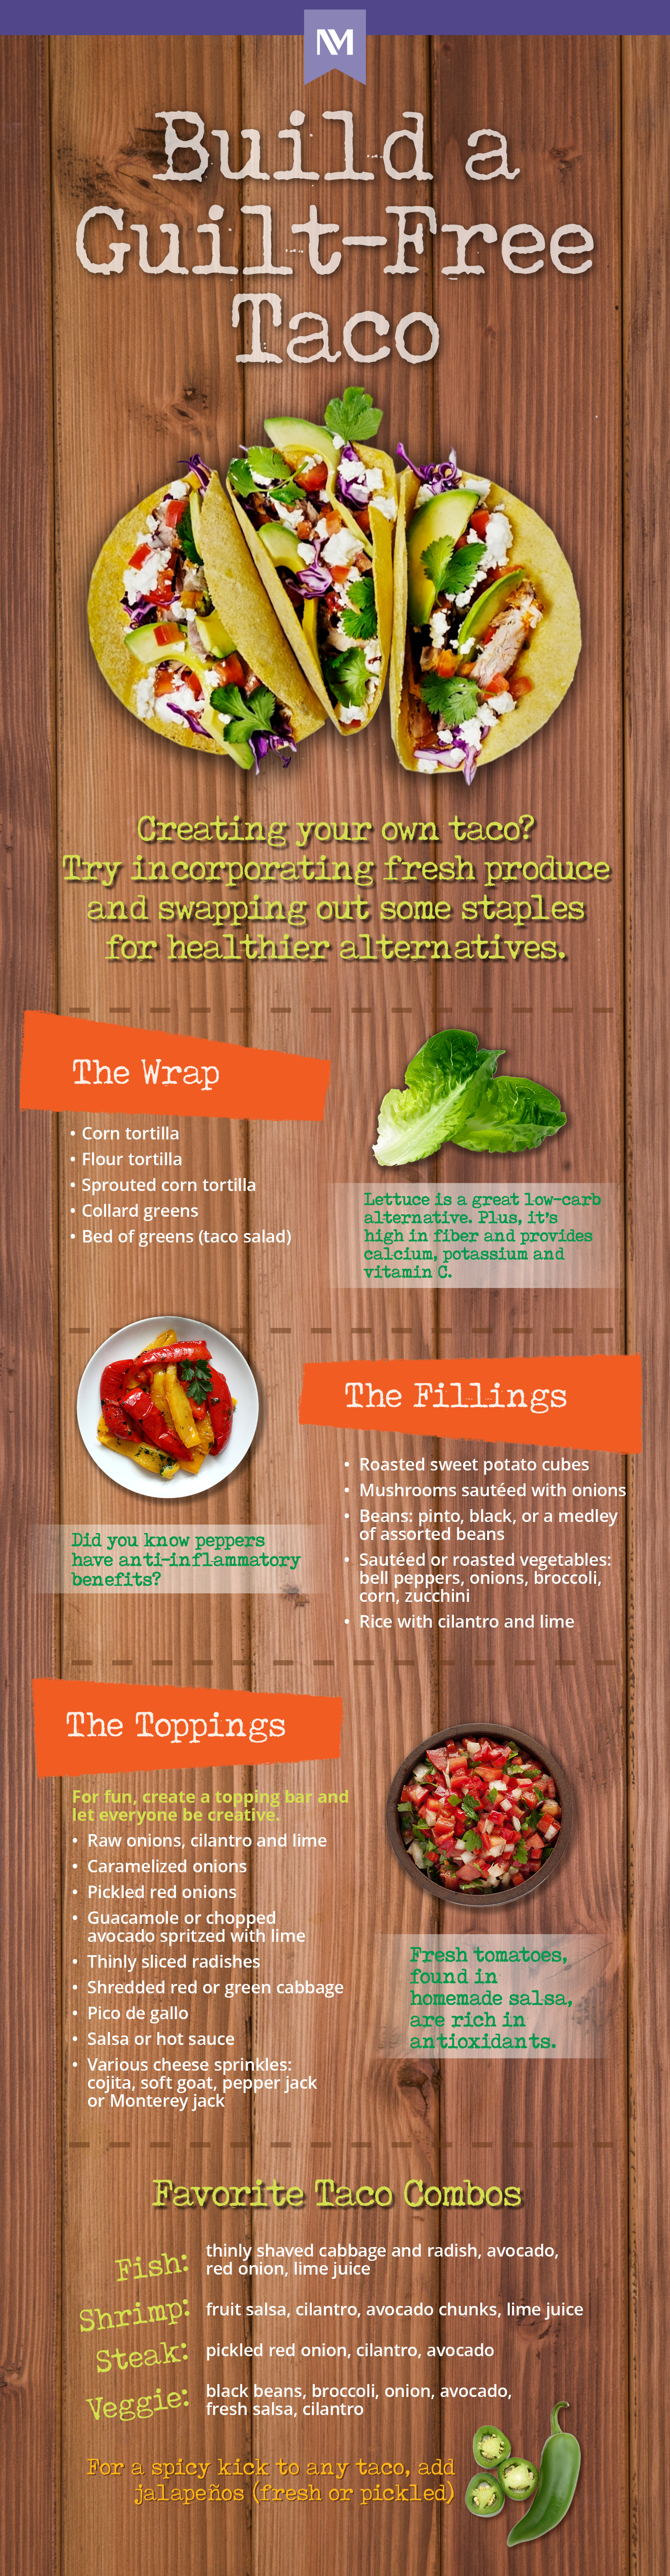 nm-build-a-guilt-free-taco_Infographic